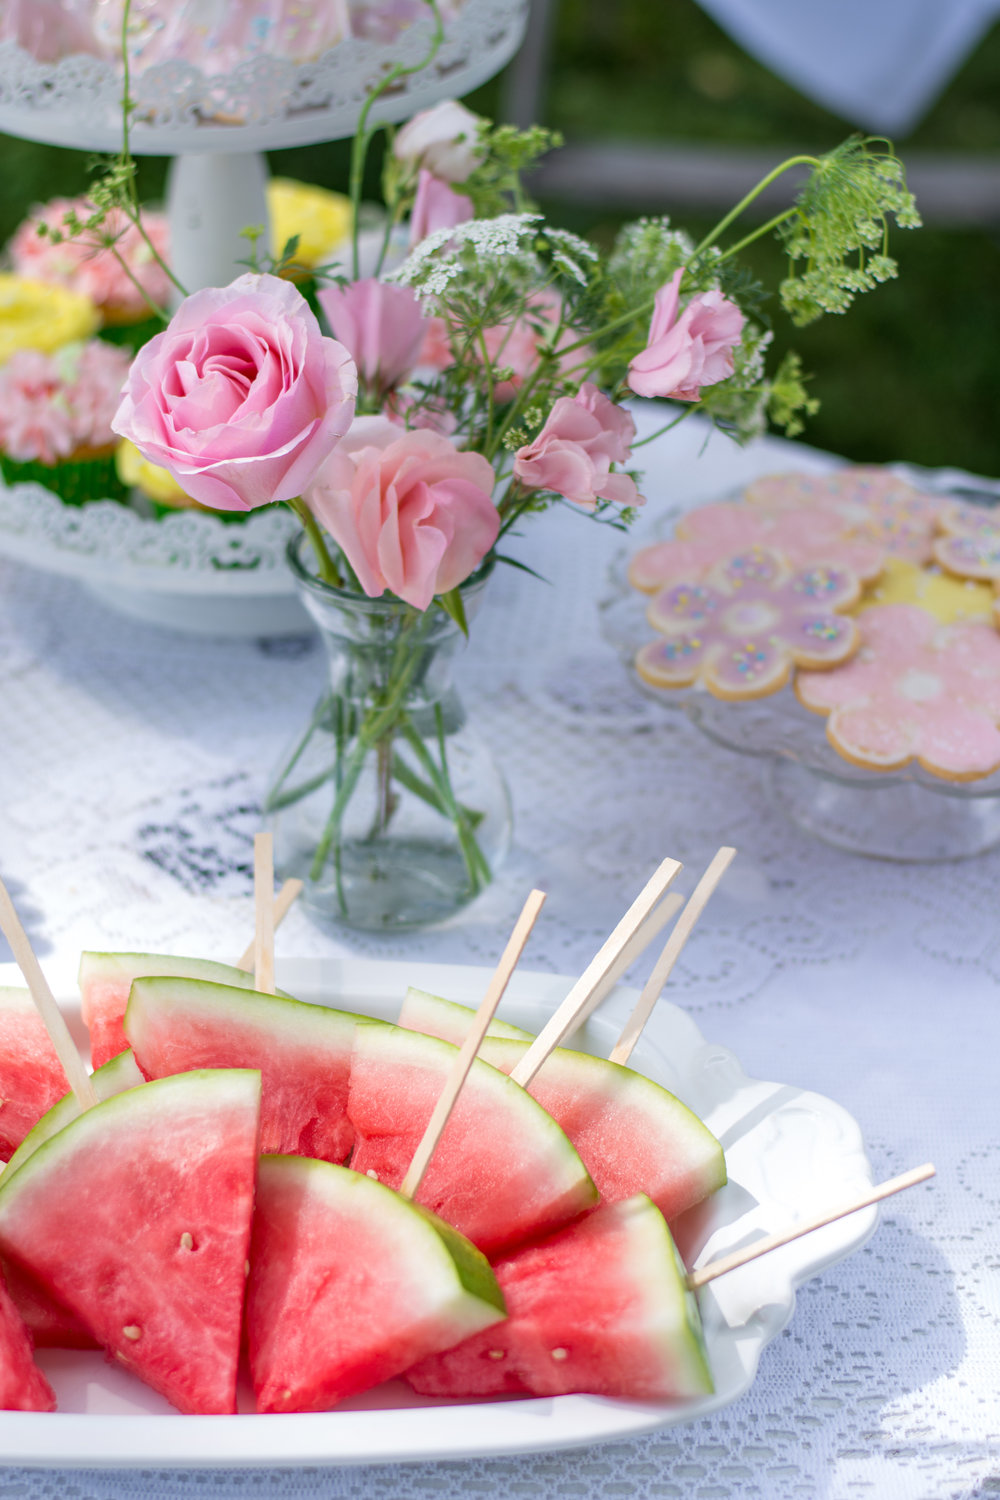 Vintage Garden Birthday Party Ideas for Tweens / serve watermelon slices on popsicle sticks for a refreshing snack / photo by Honeysuckle Rose Photography - as seen on www.GiggleHearts.com